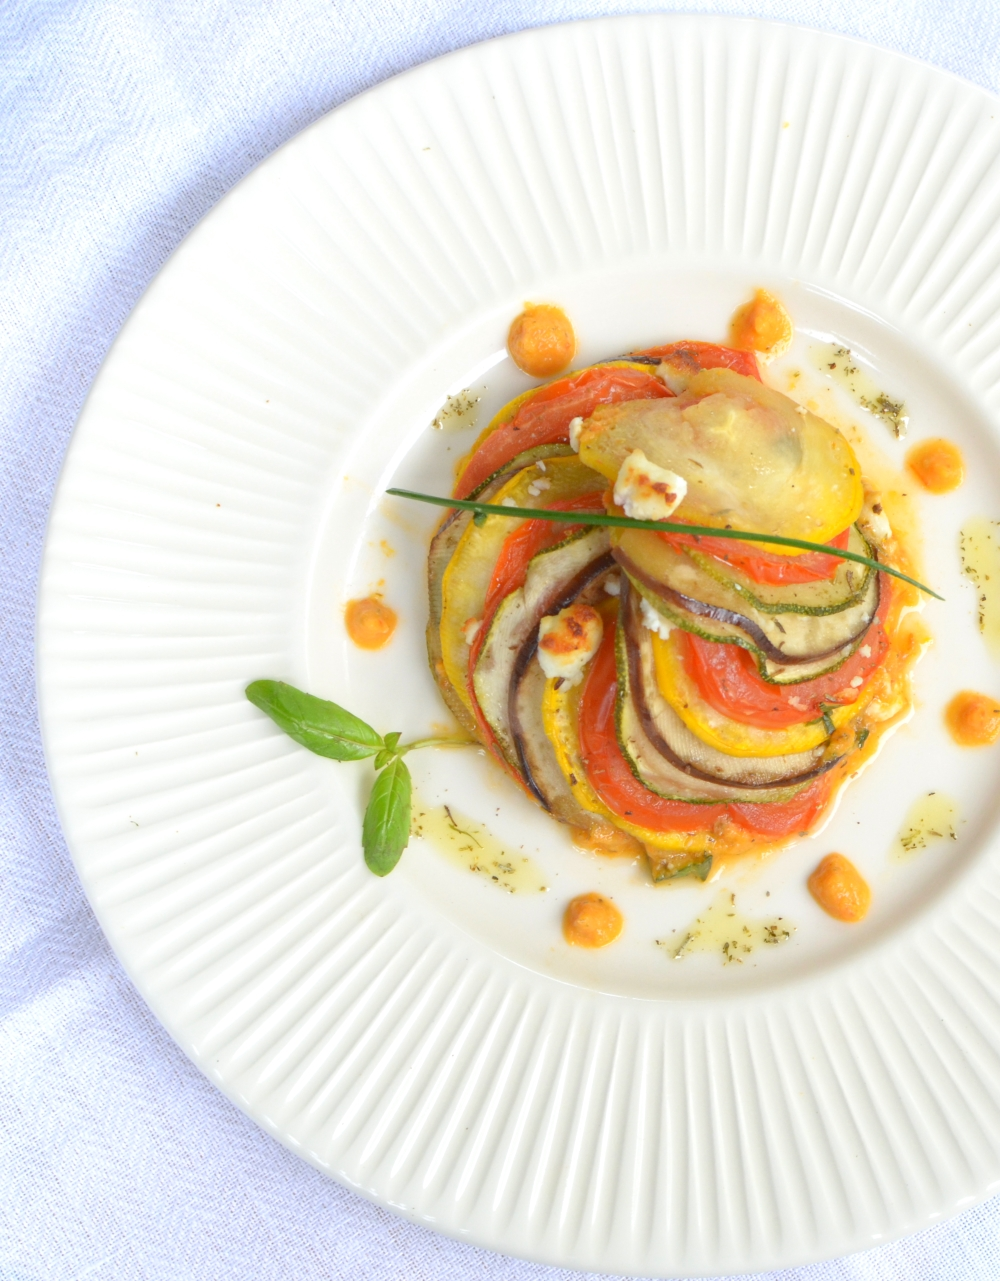 Provencal-Vegetables-Tian-With-Goat-Cheese-And-Paprika-Sauce-12b